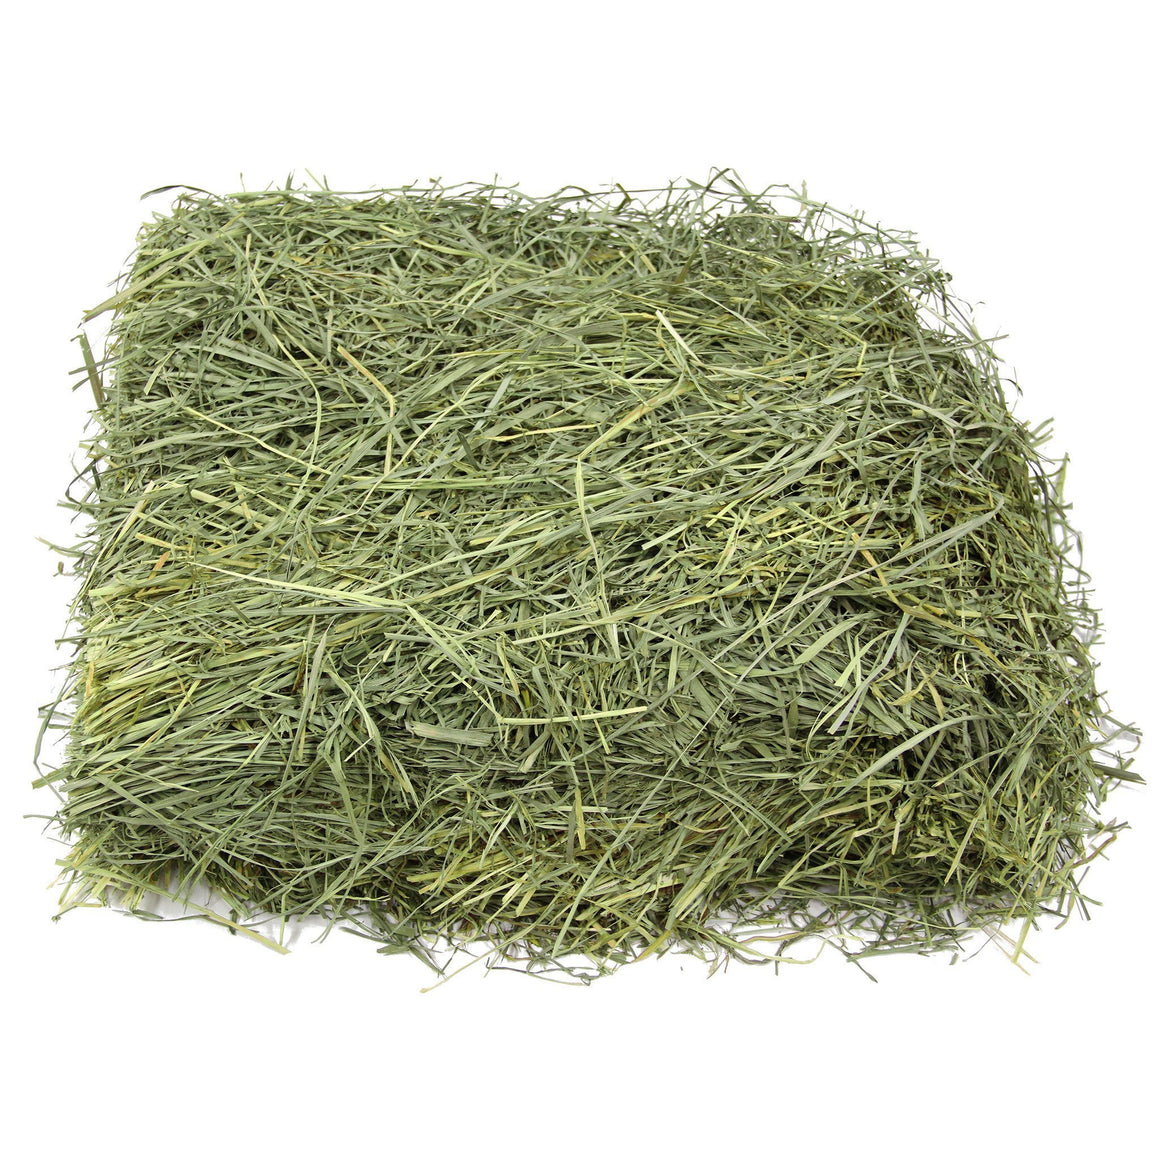 Bluegrass hay - KMS Hayloft